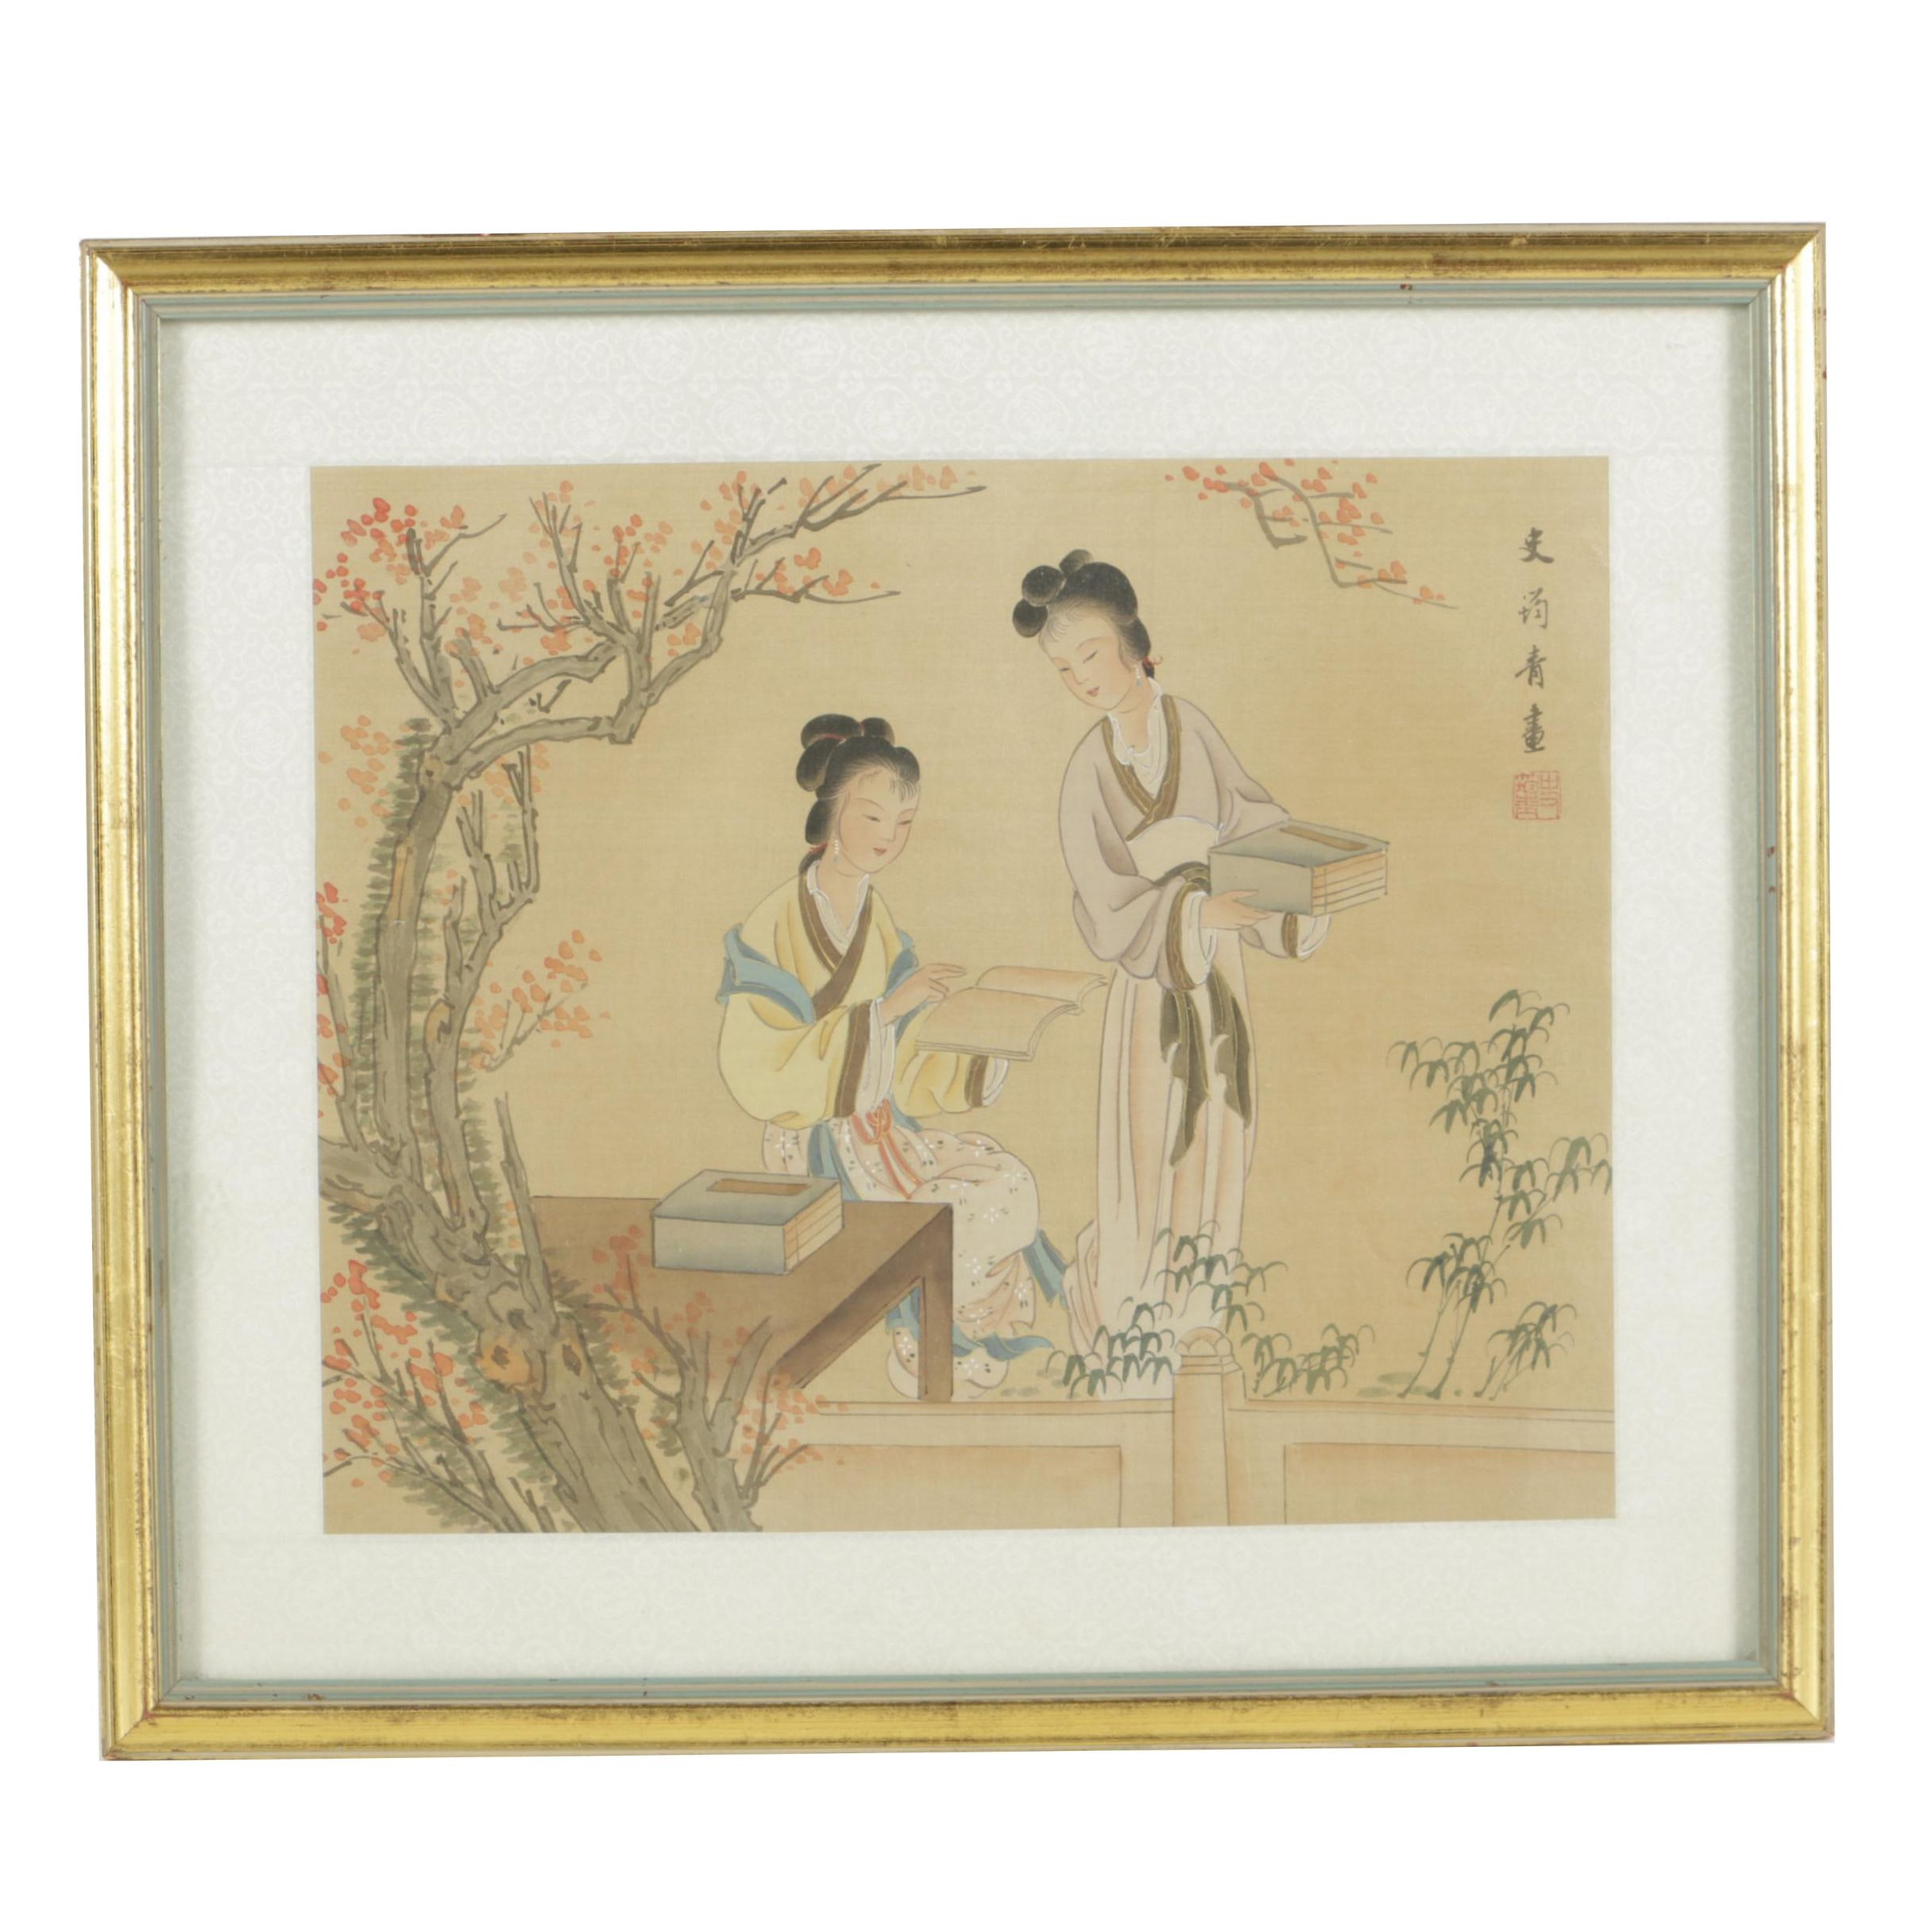 East Asian Gouache and Watercolor Painting on Silk of Two Female Figures Reading